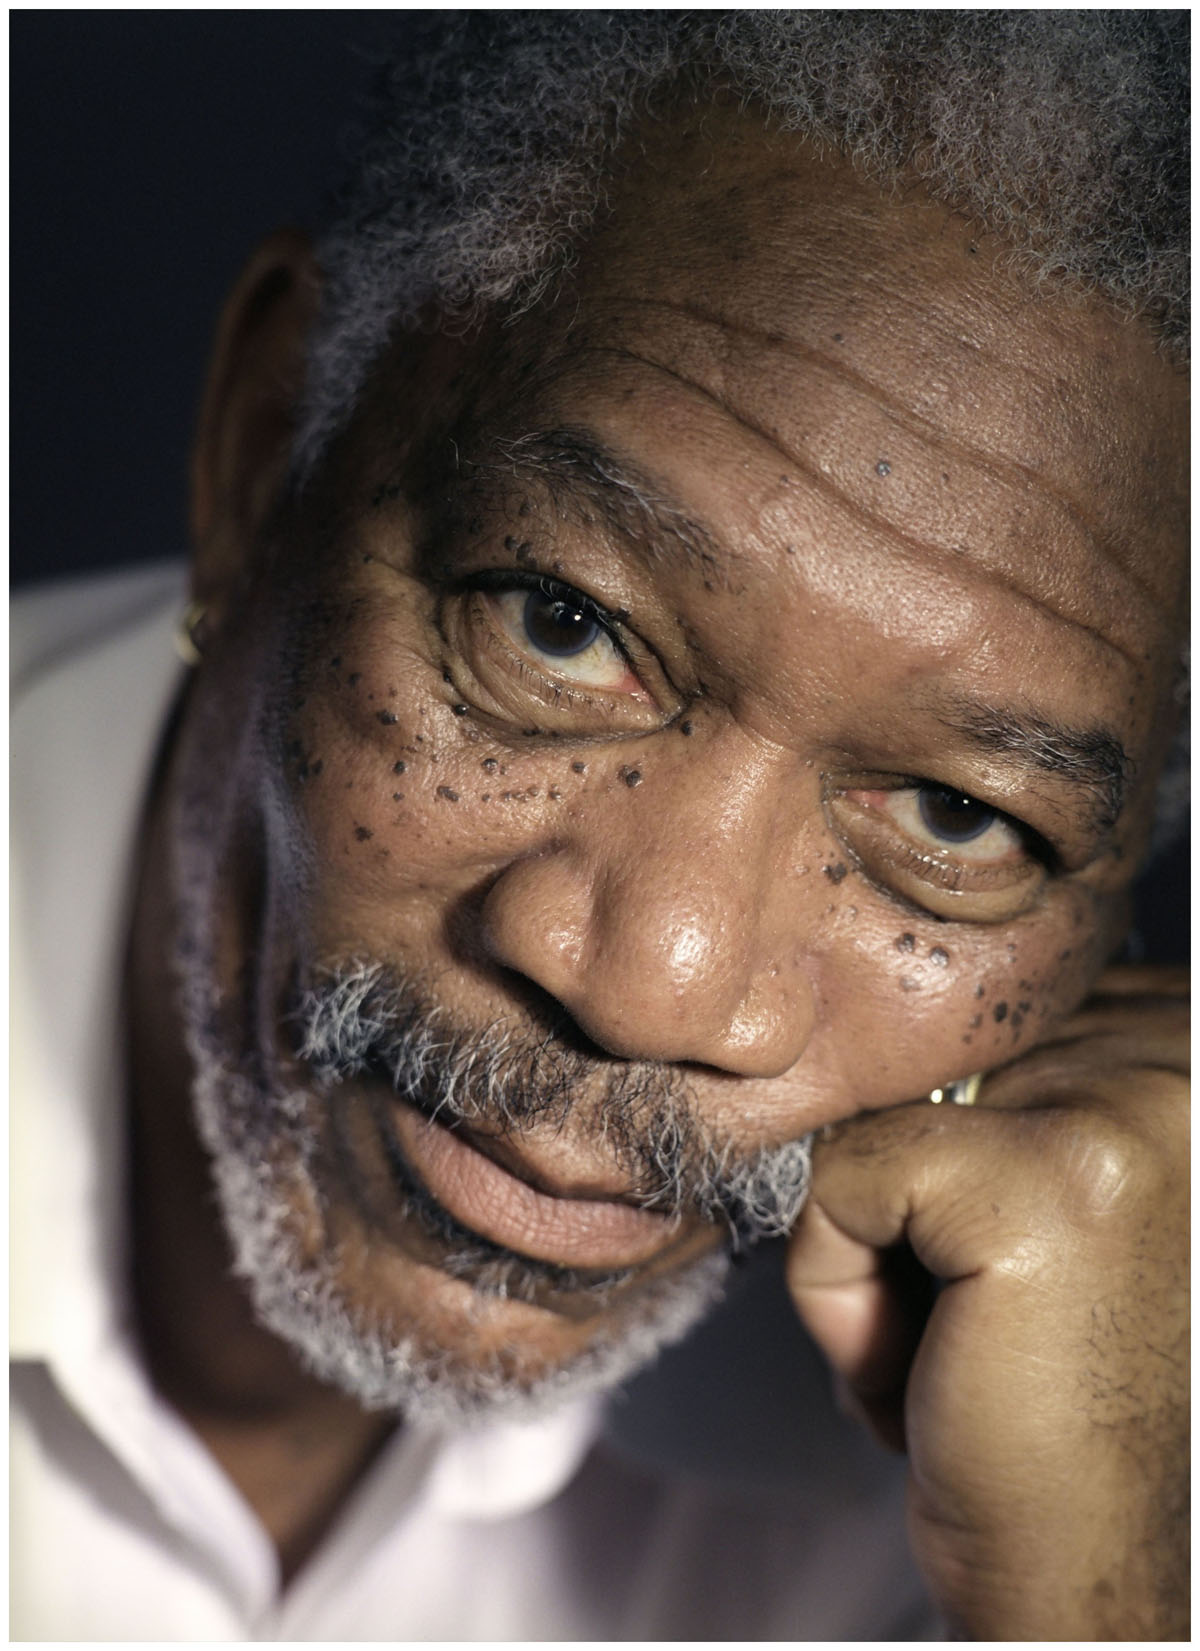 Morgan Freeman Photo Michael Grecco 2004 169 Pleasurephoto